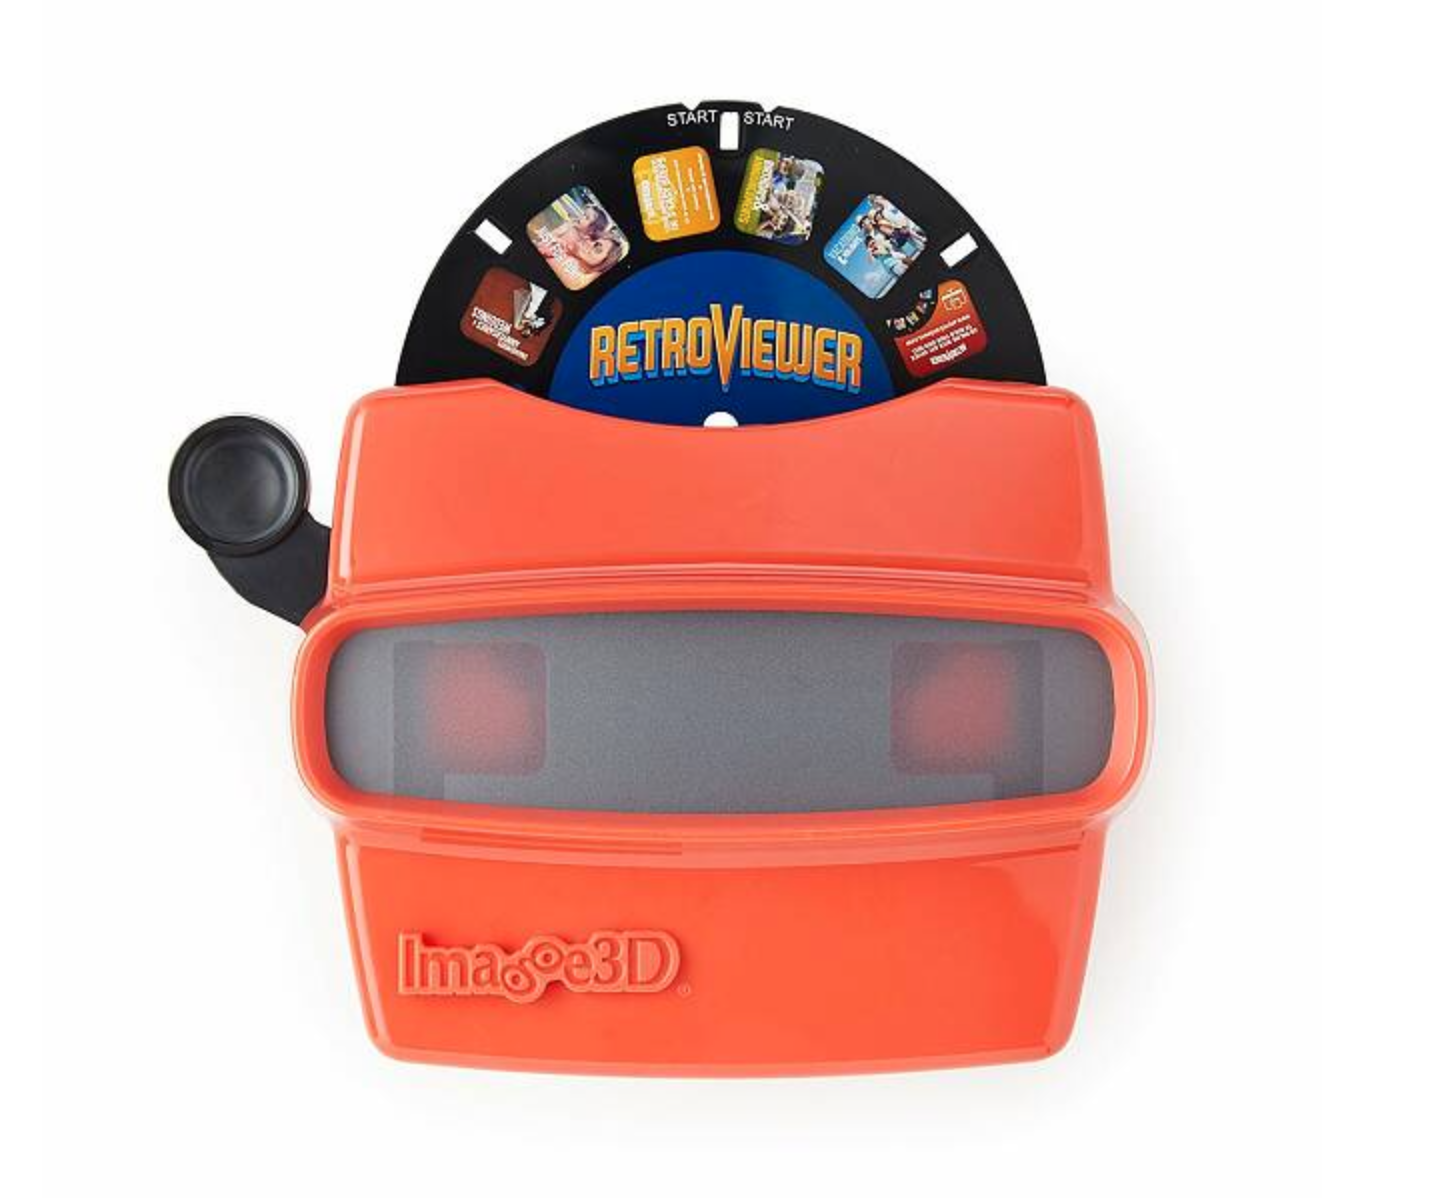 Red retro reel viewer